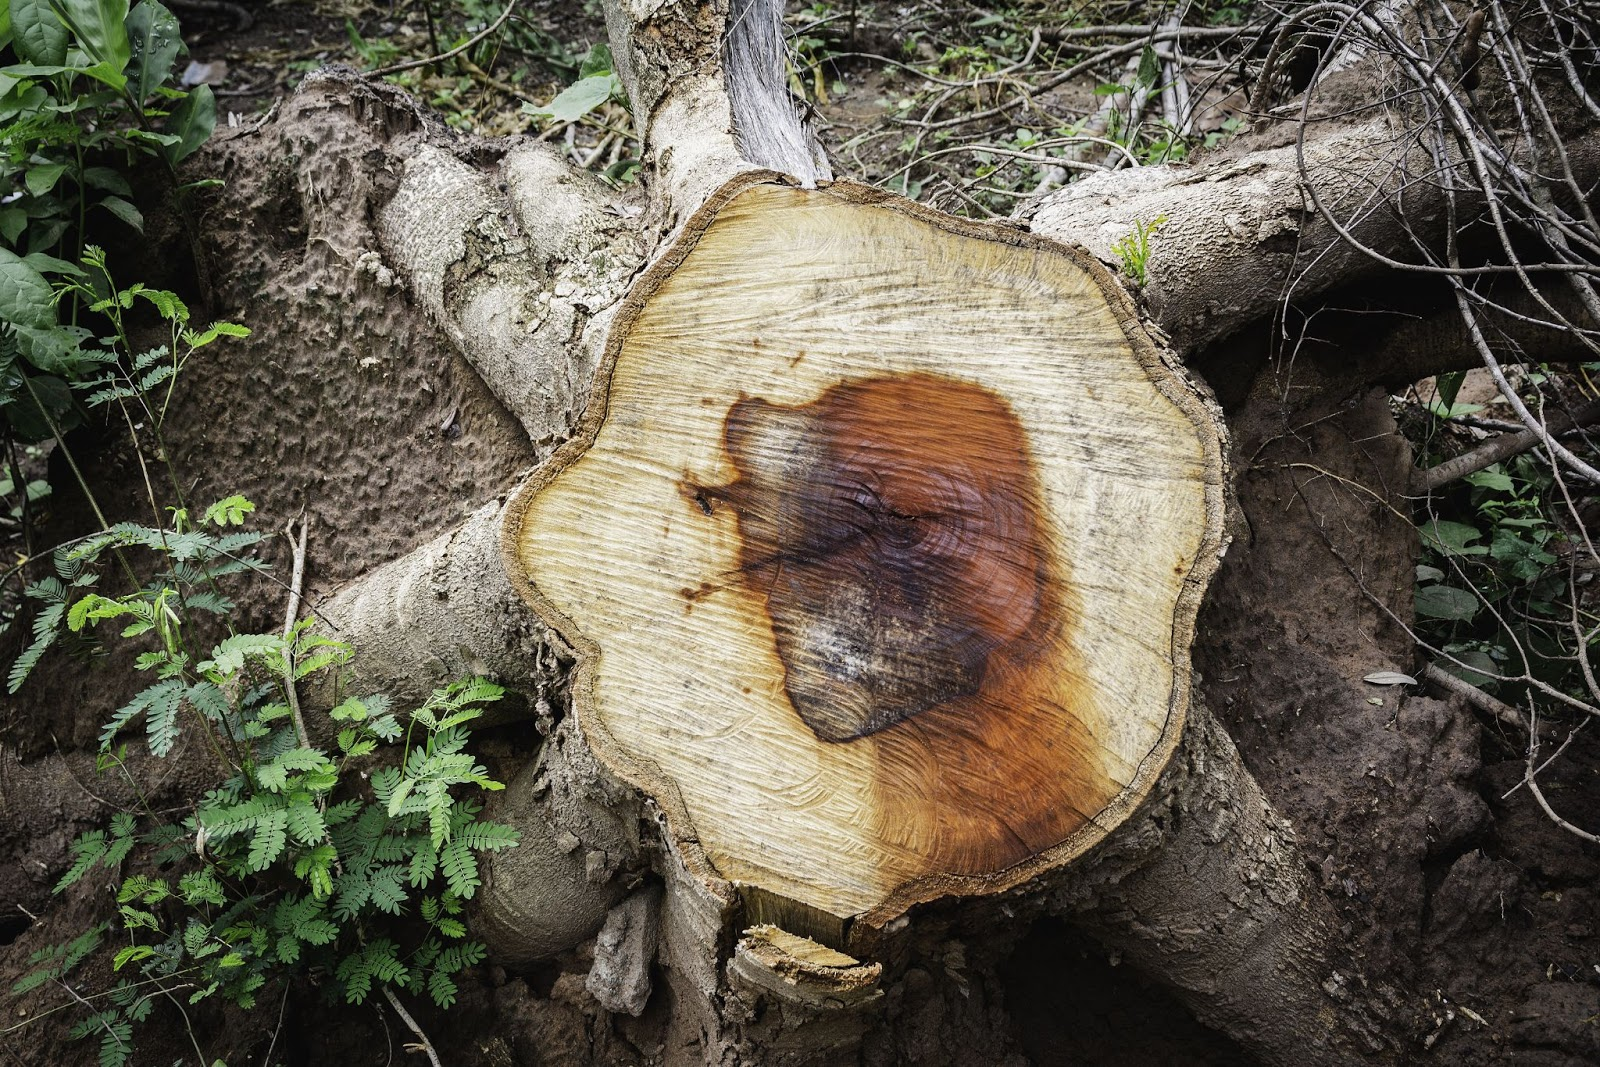 Image looking down to the top of a stump with large roots in the ground that is in need of stump removal services.